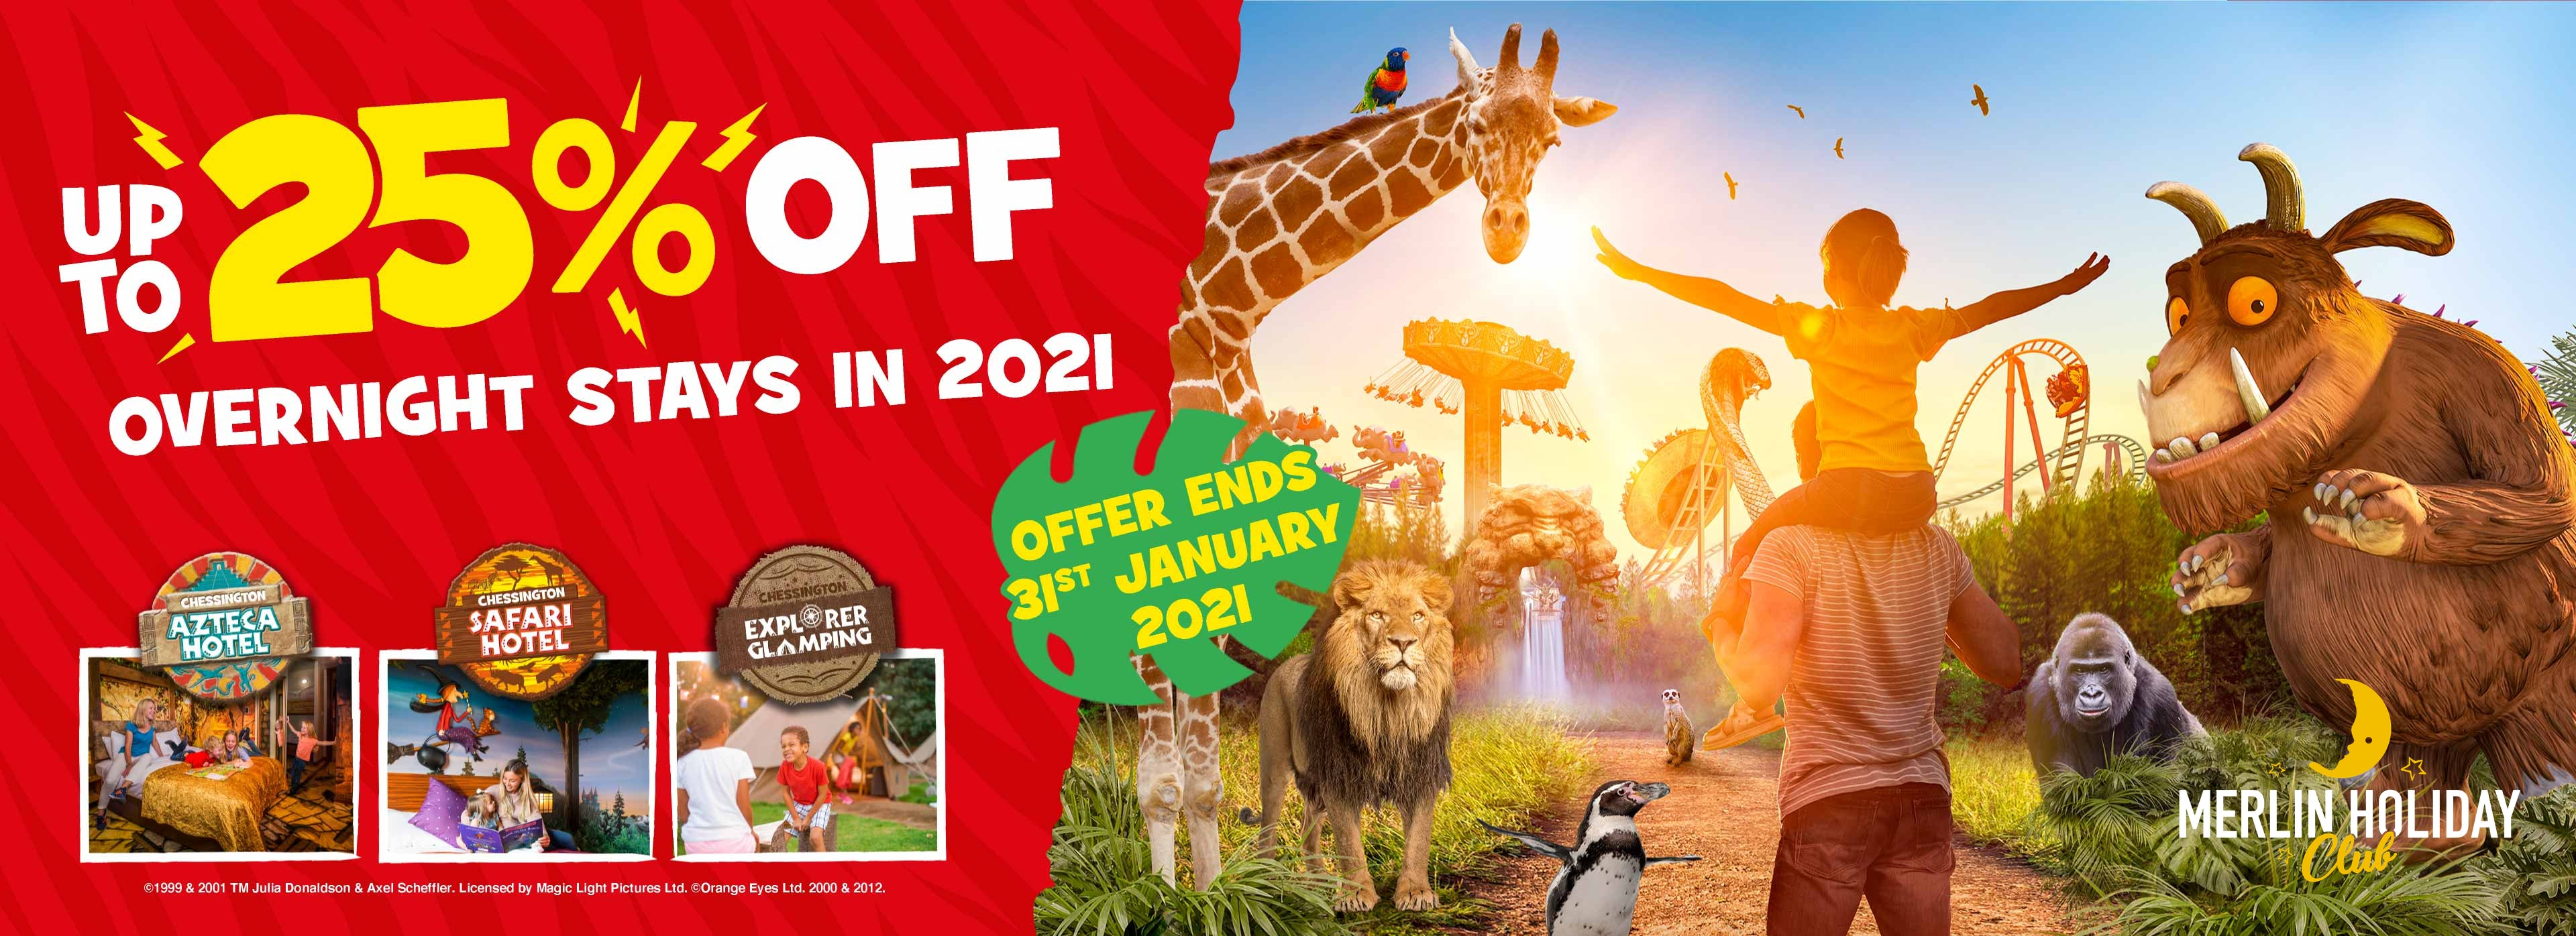 Save up to 25% on 2020 stays with your Annual Pass with Chessington Holidays.